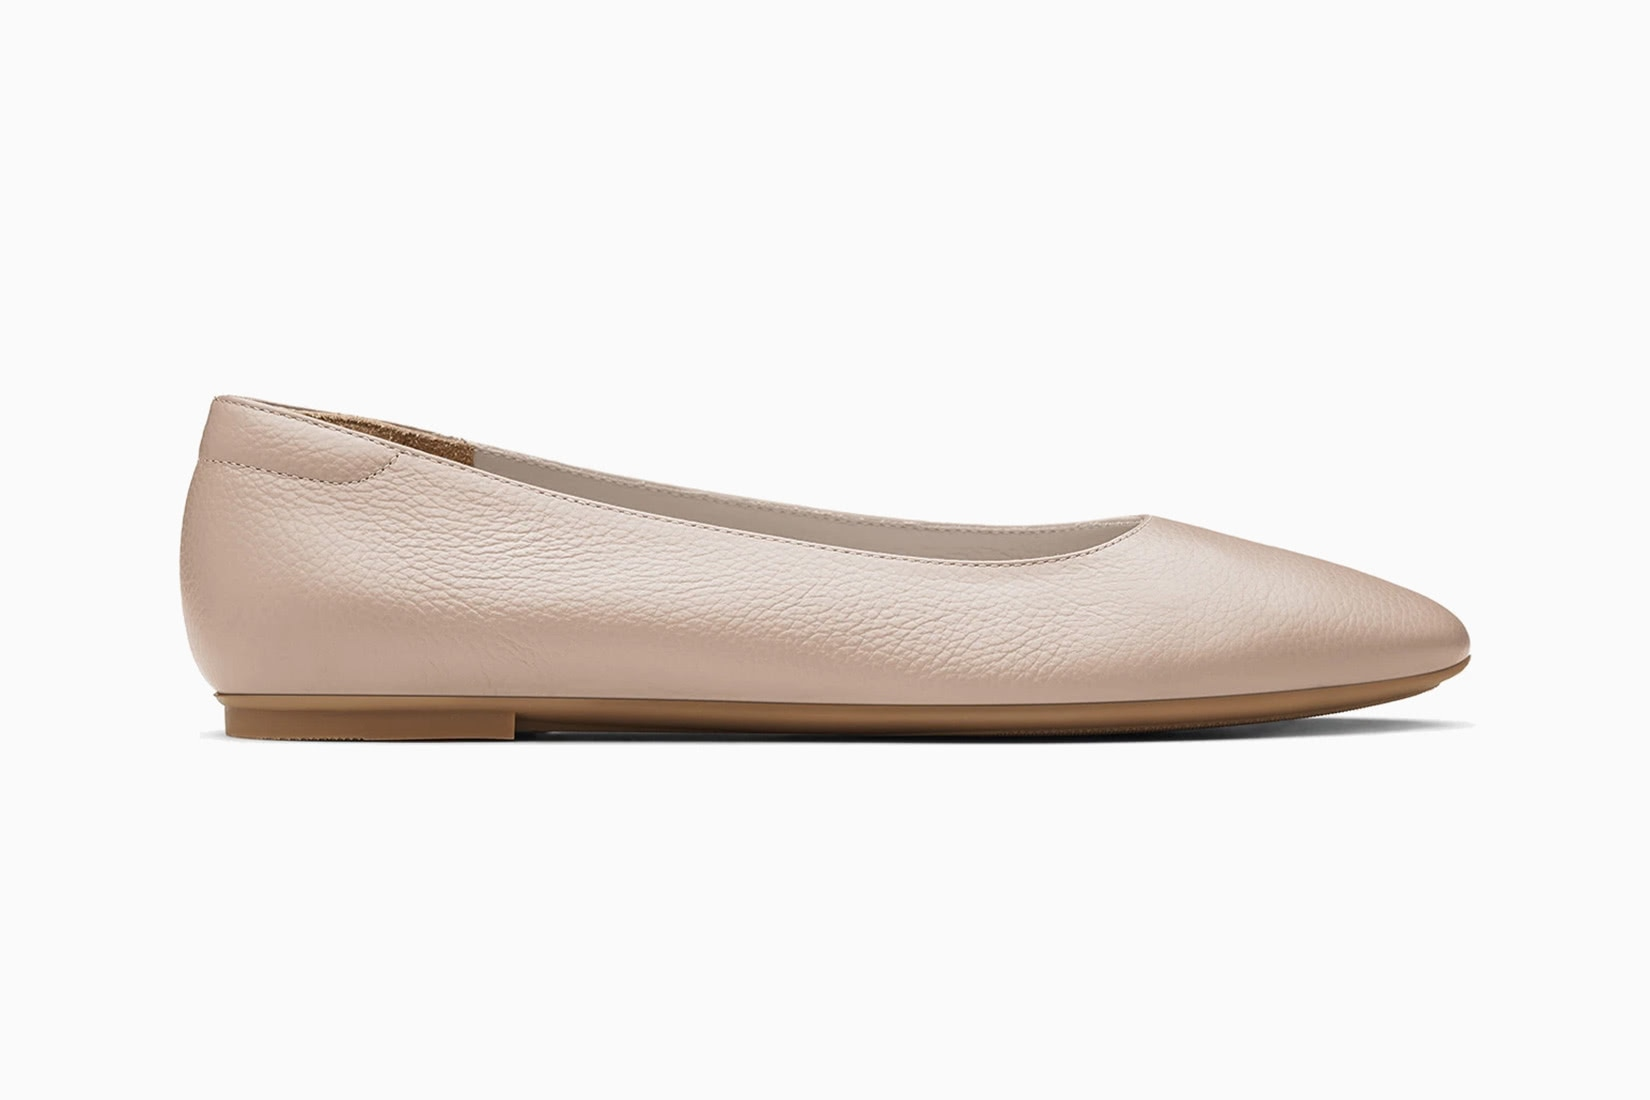 most comfortable flats women oliver cabell dream review - Luxe Digital